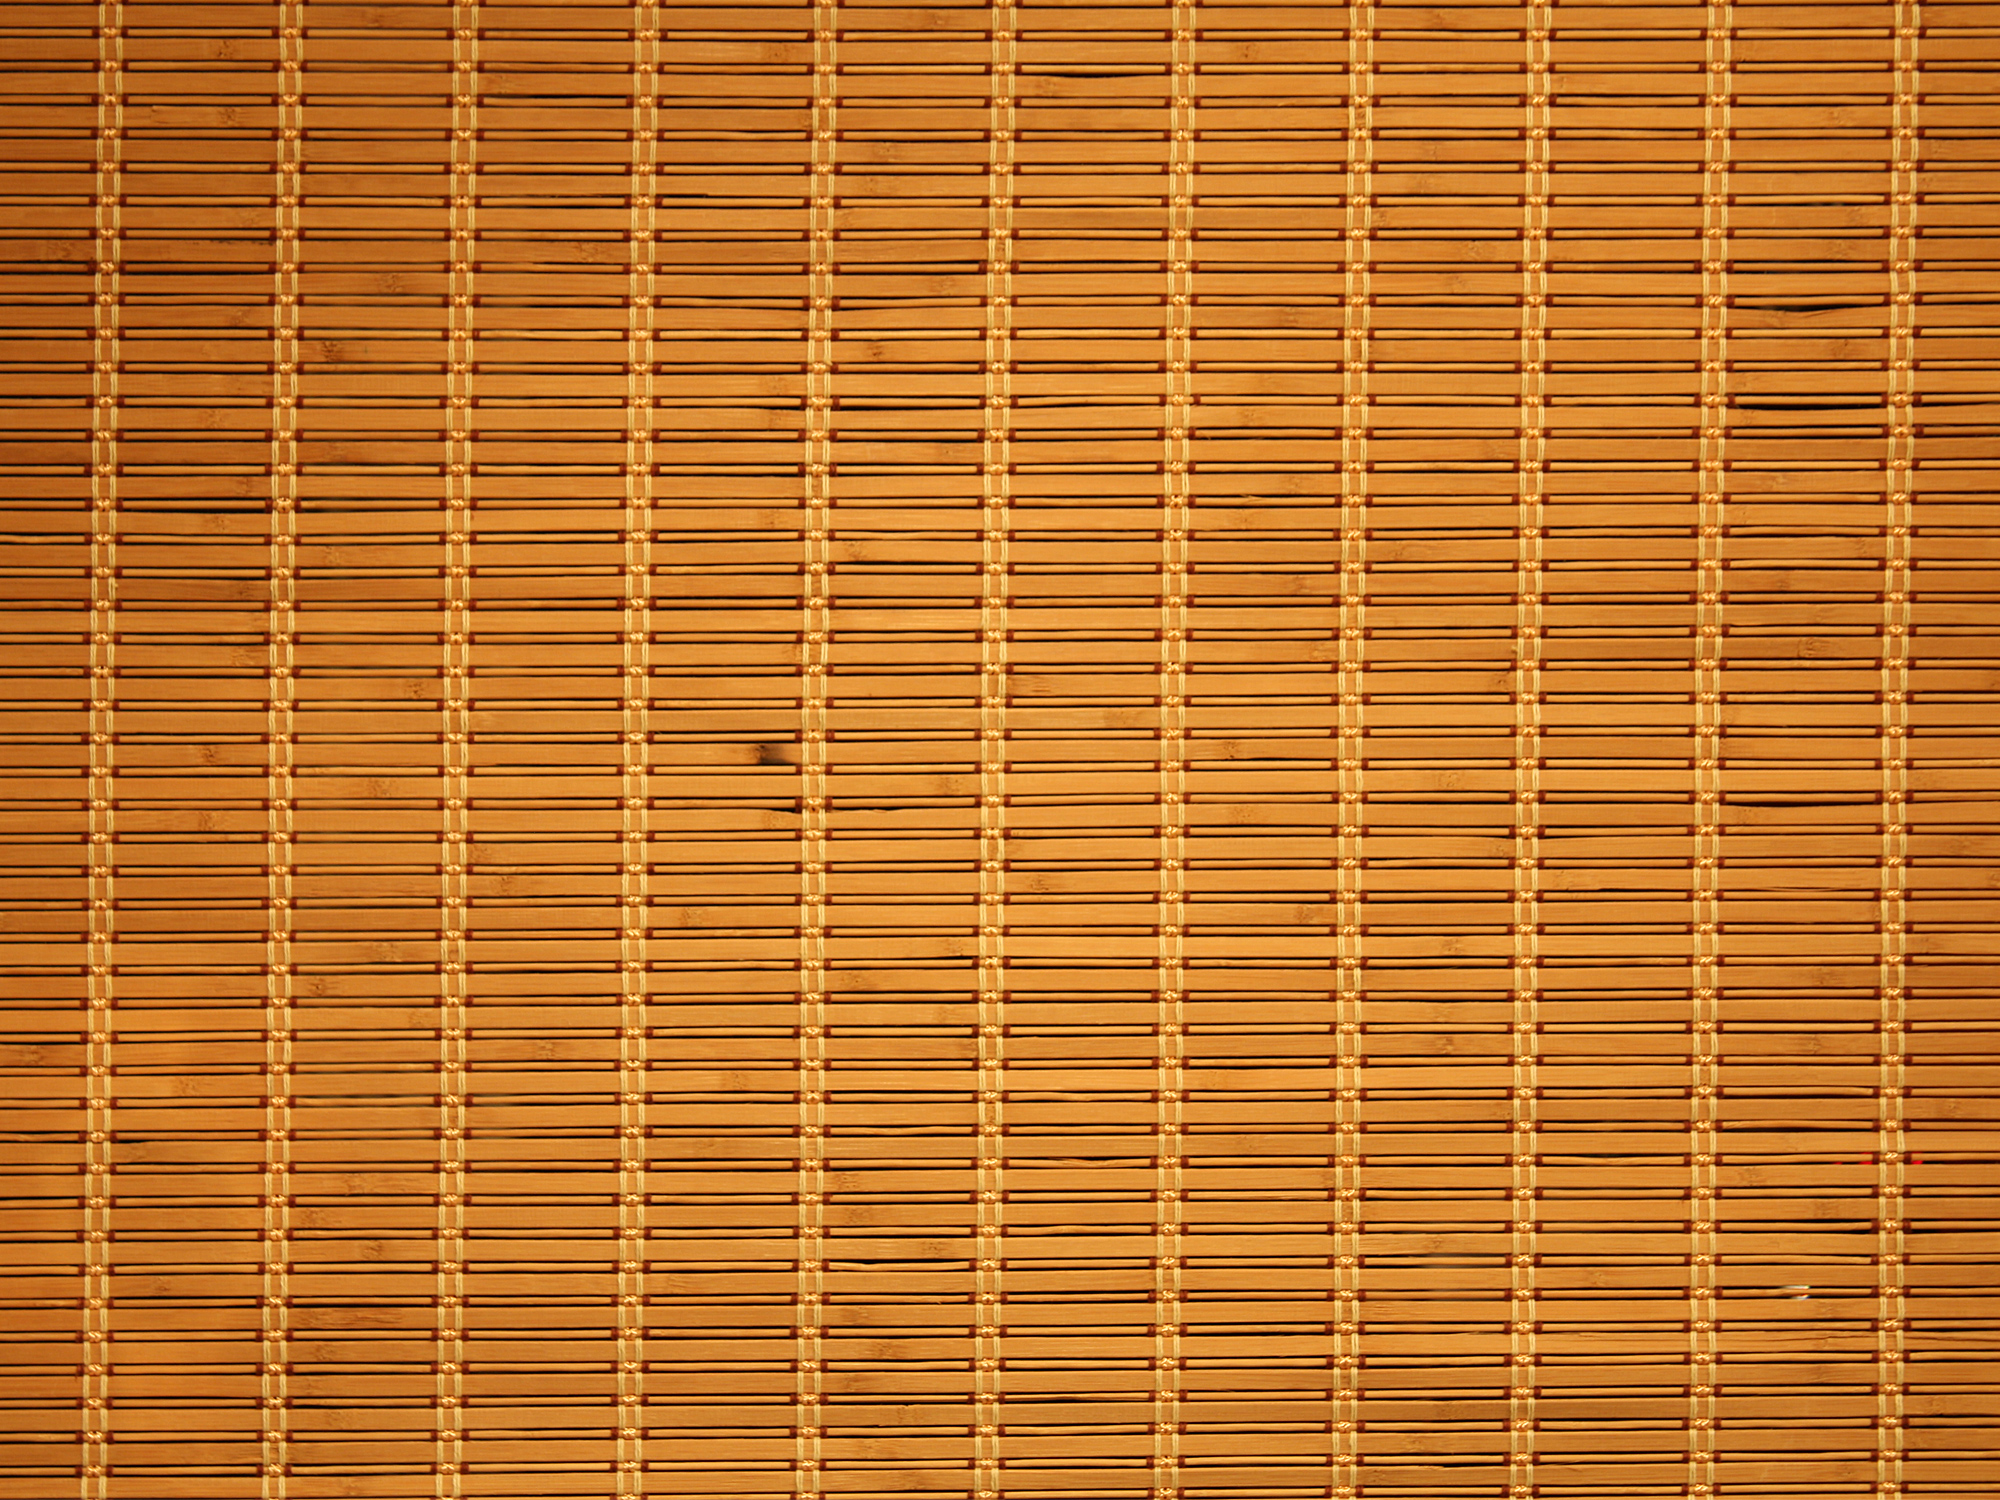 bamboo mat, carpet, texture, download photo, background, bamboo texture